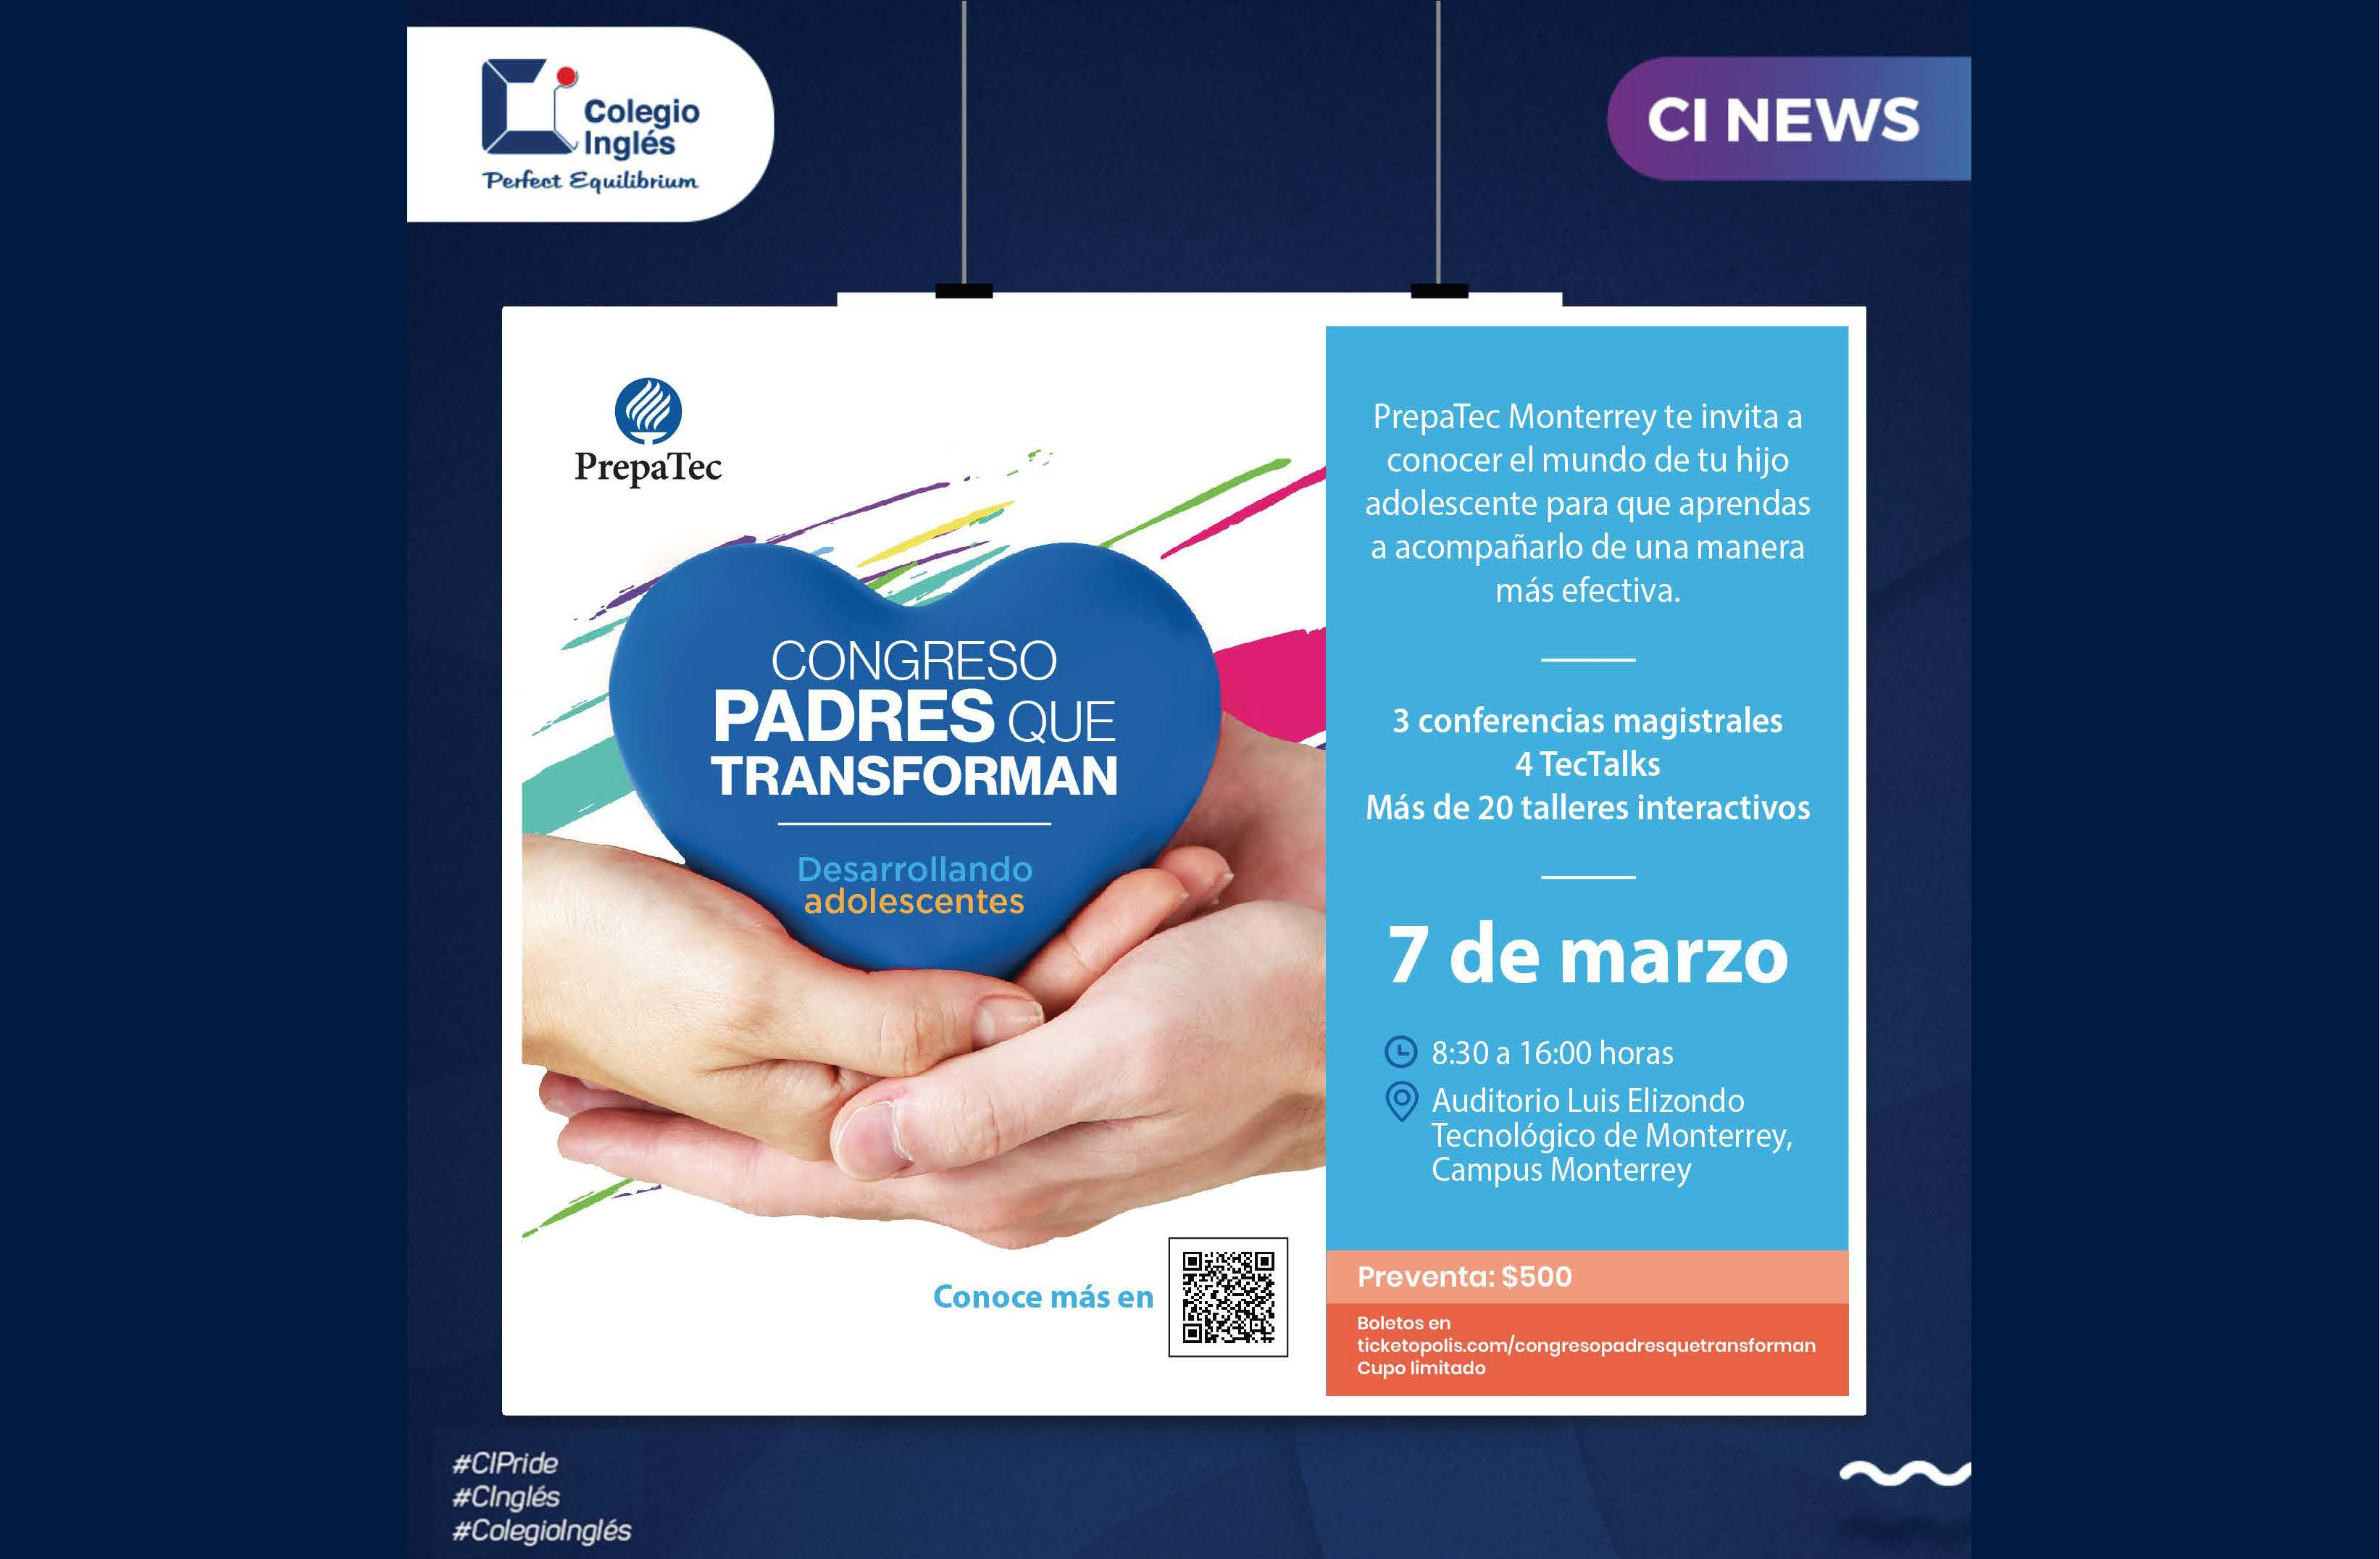 Congreso Padres que Transforman